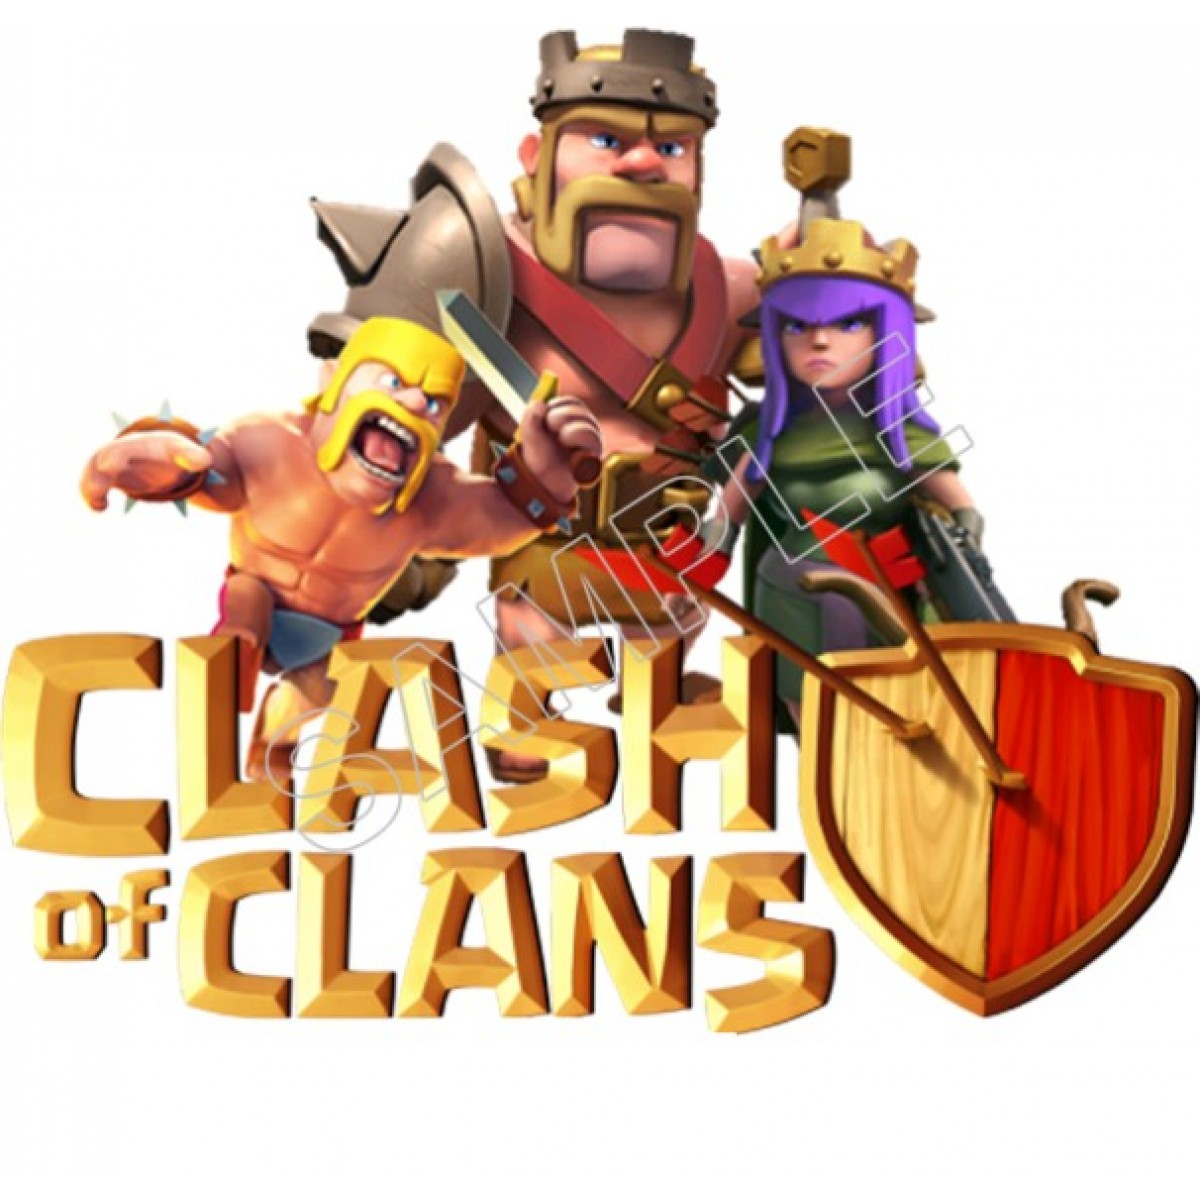 Hd Puzzle Wallpaper Clash Of Clans Logo Free Download